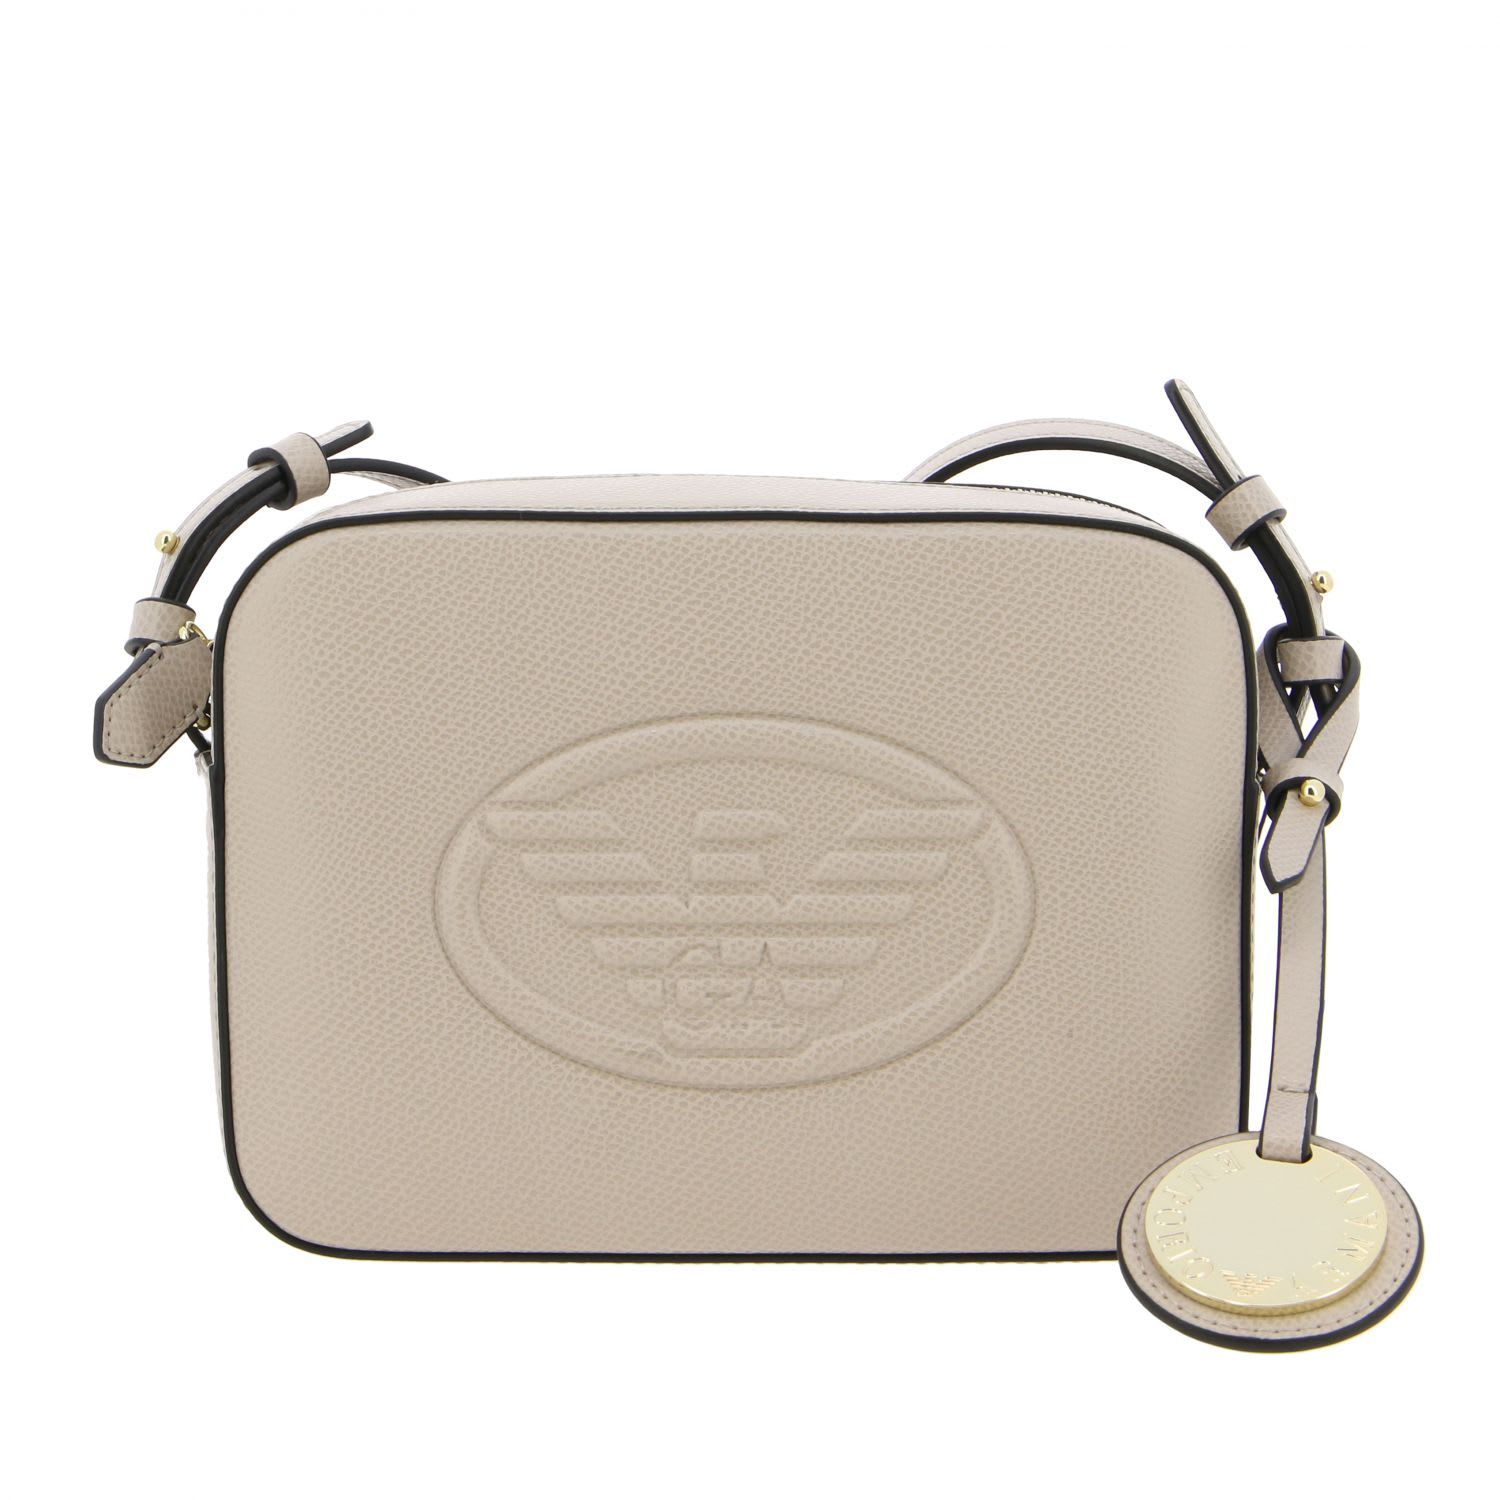 Emporio Armani Shoulder Bag In Synthetic Leather With Embossed Logo In Dove Grey